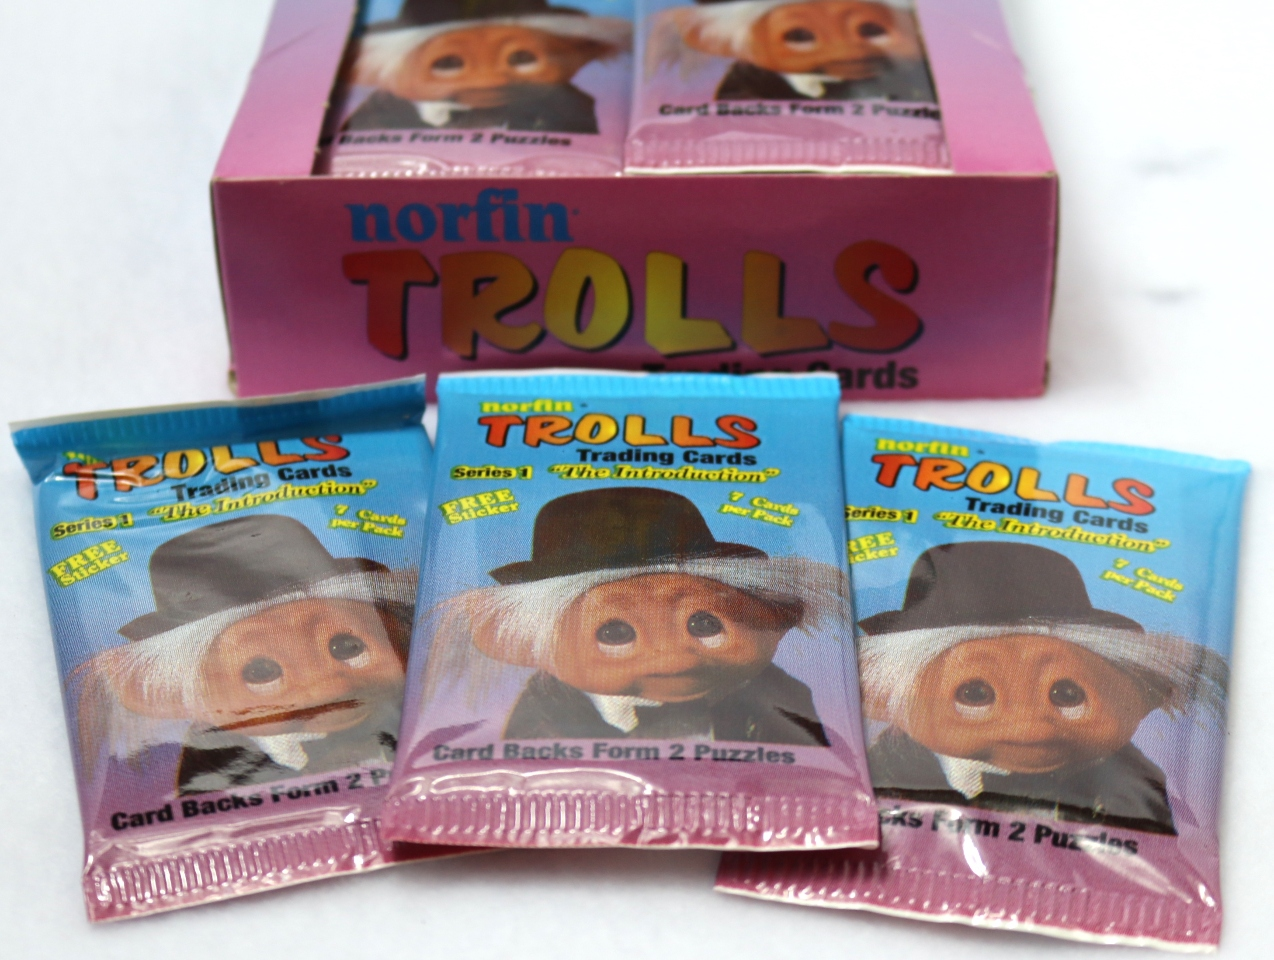 3 Packs of Vintage Norfin Trolls Trading Cards 80's 90's Troll The Introduction